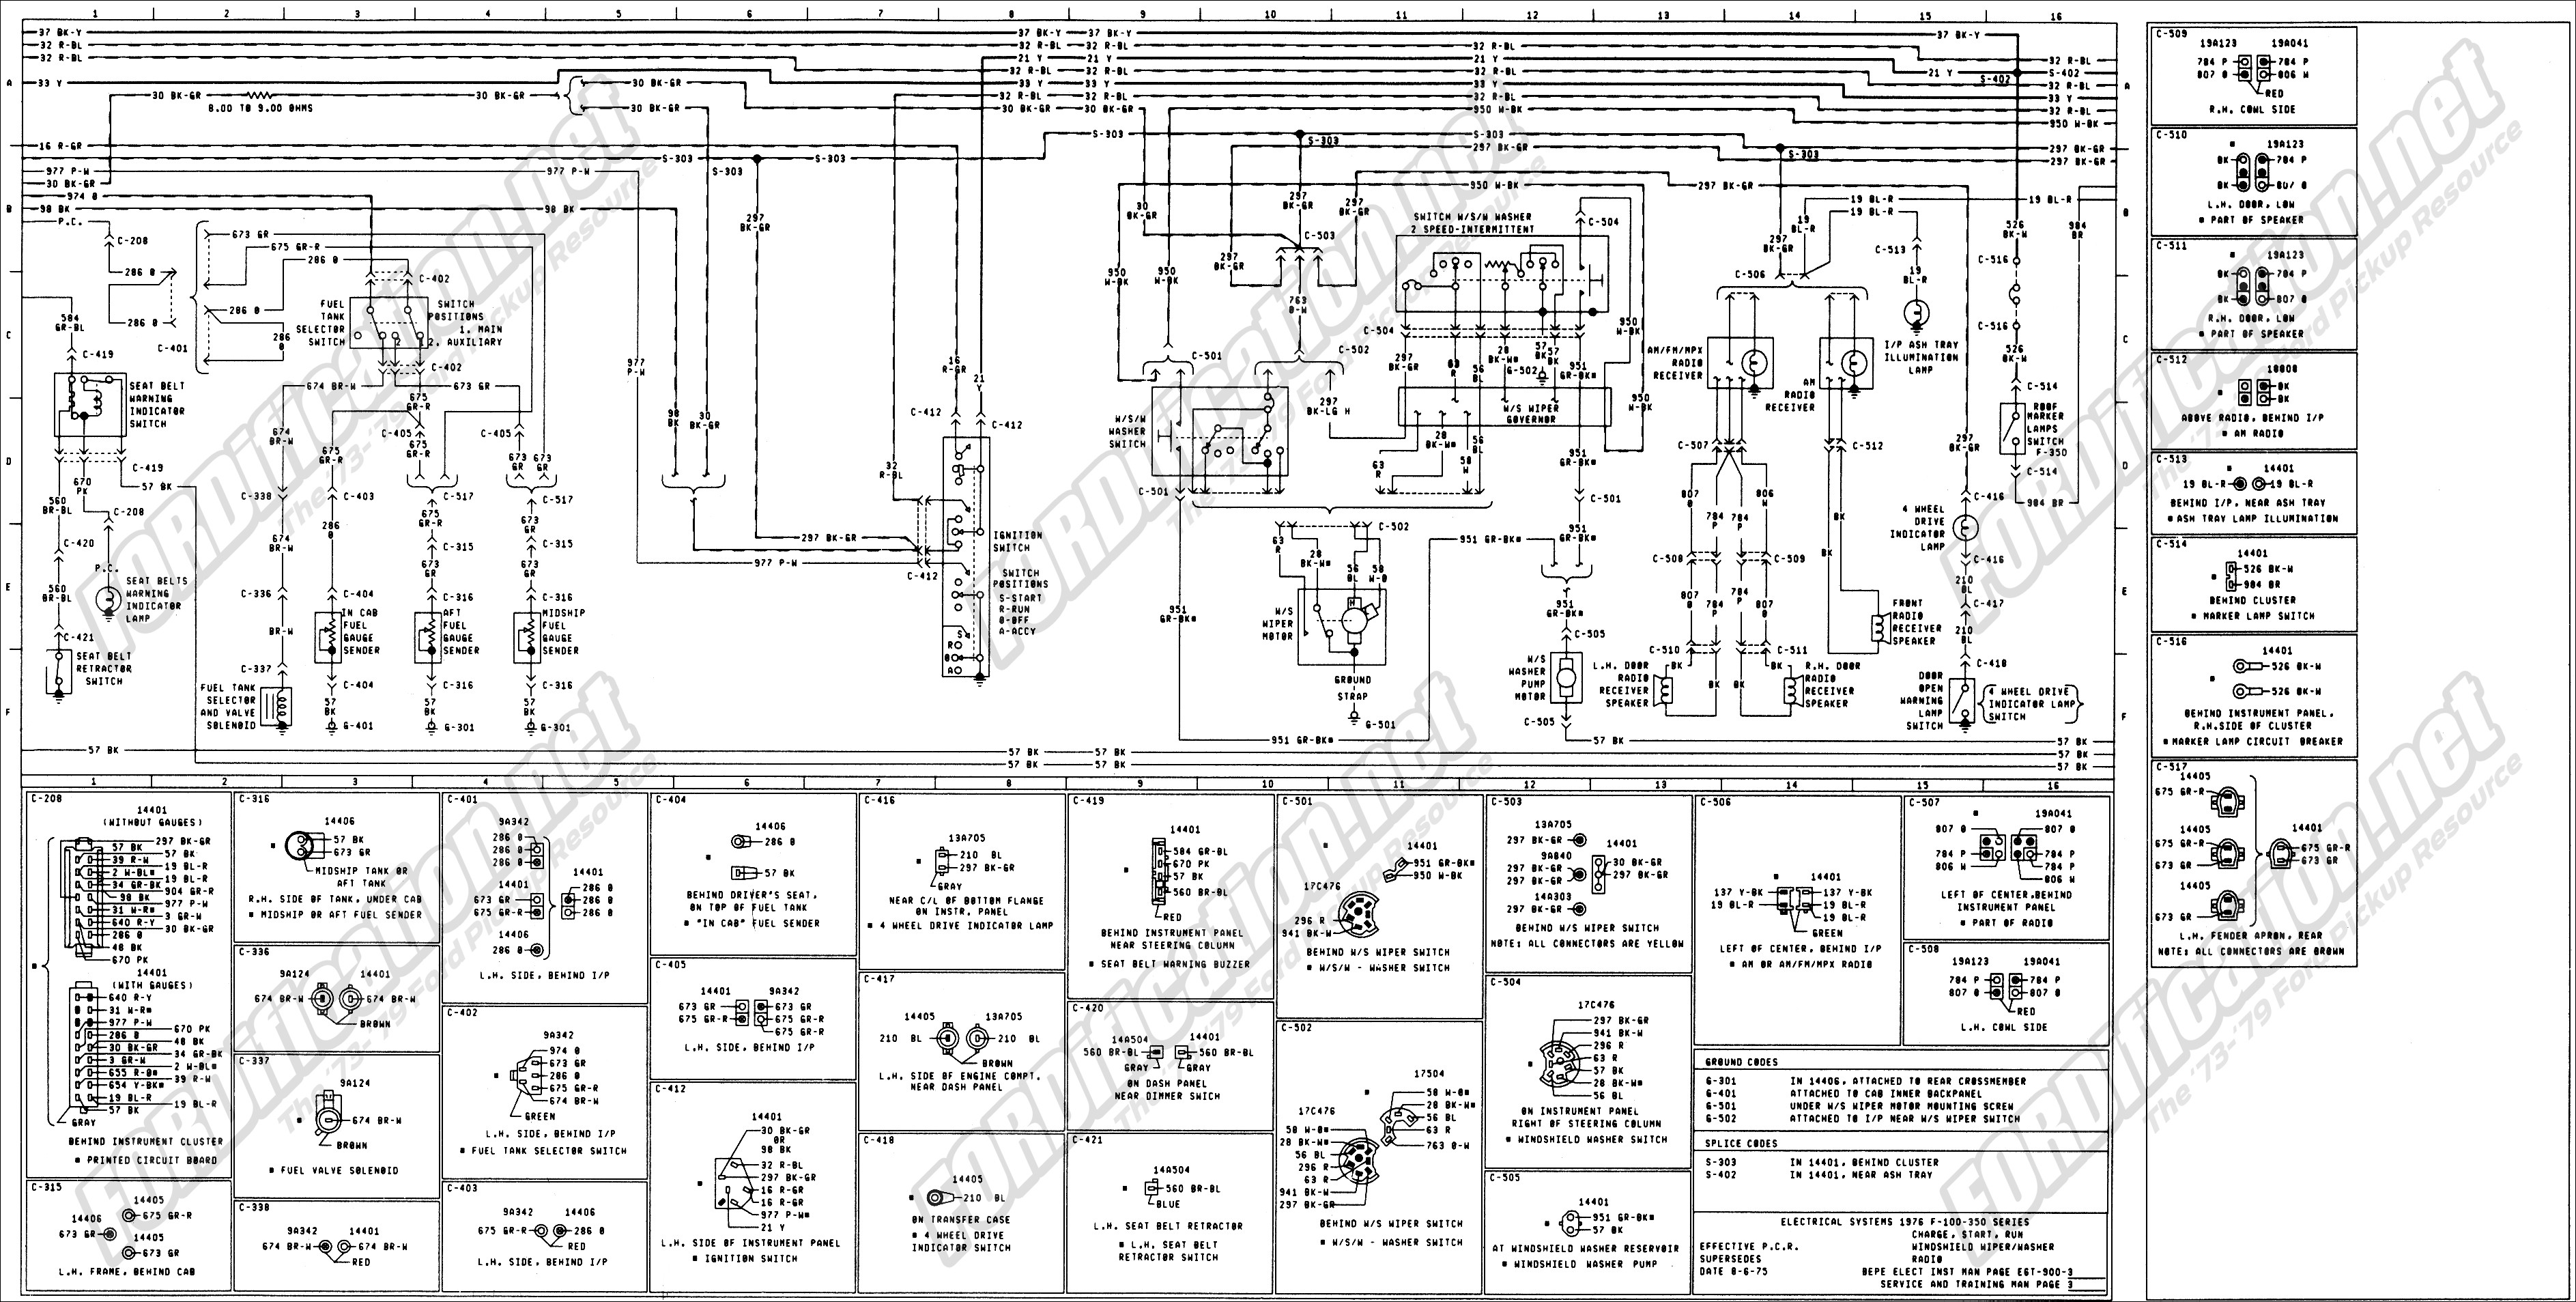 Ford Transit Engine Diagram 1973 1979 ford Truck Wiring Diagrams ...